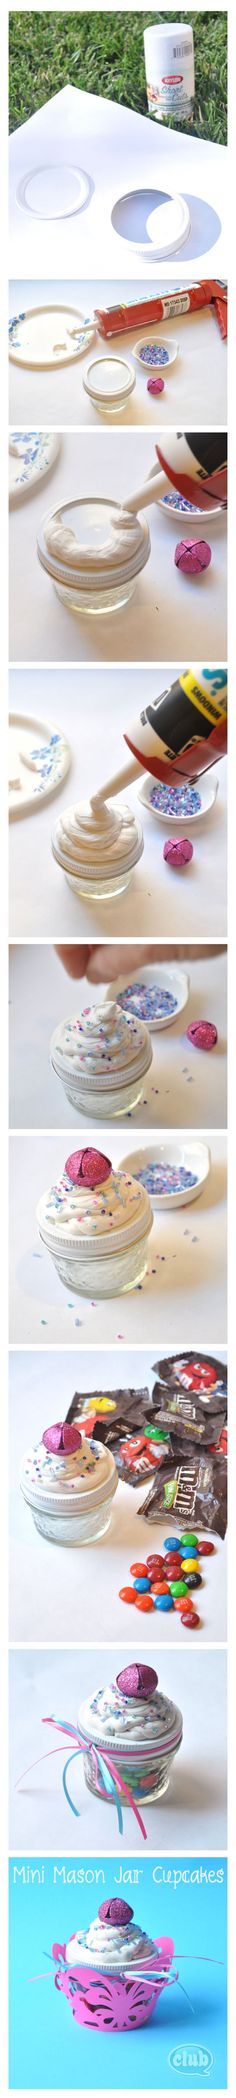 Mini Mason Jar Candy Cupcakes DIY craft using caulk and beads. Or use baby jars! Awesome!!